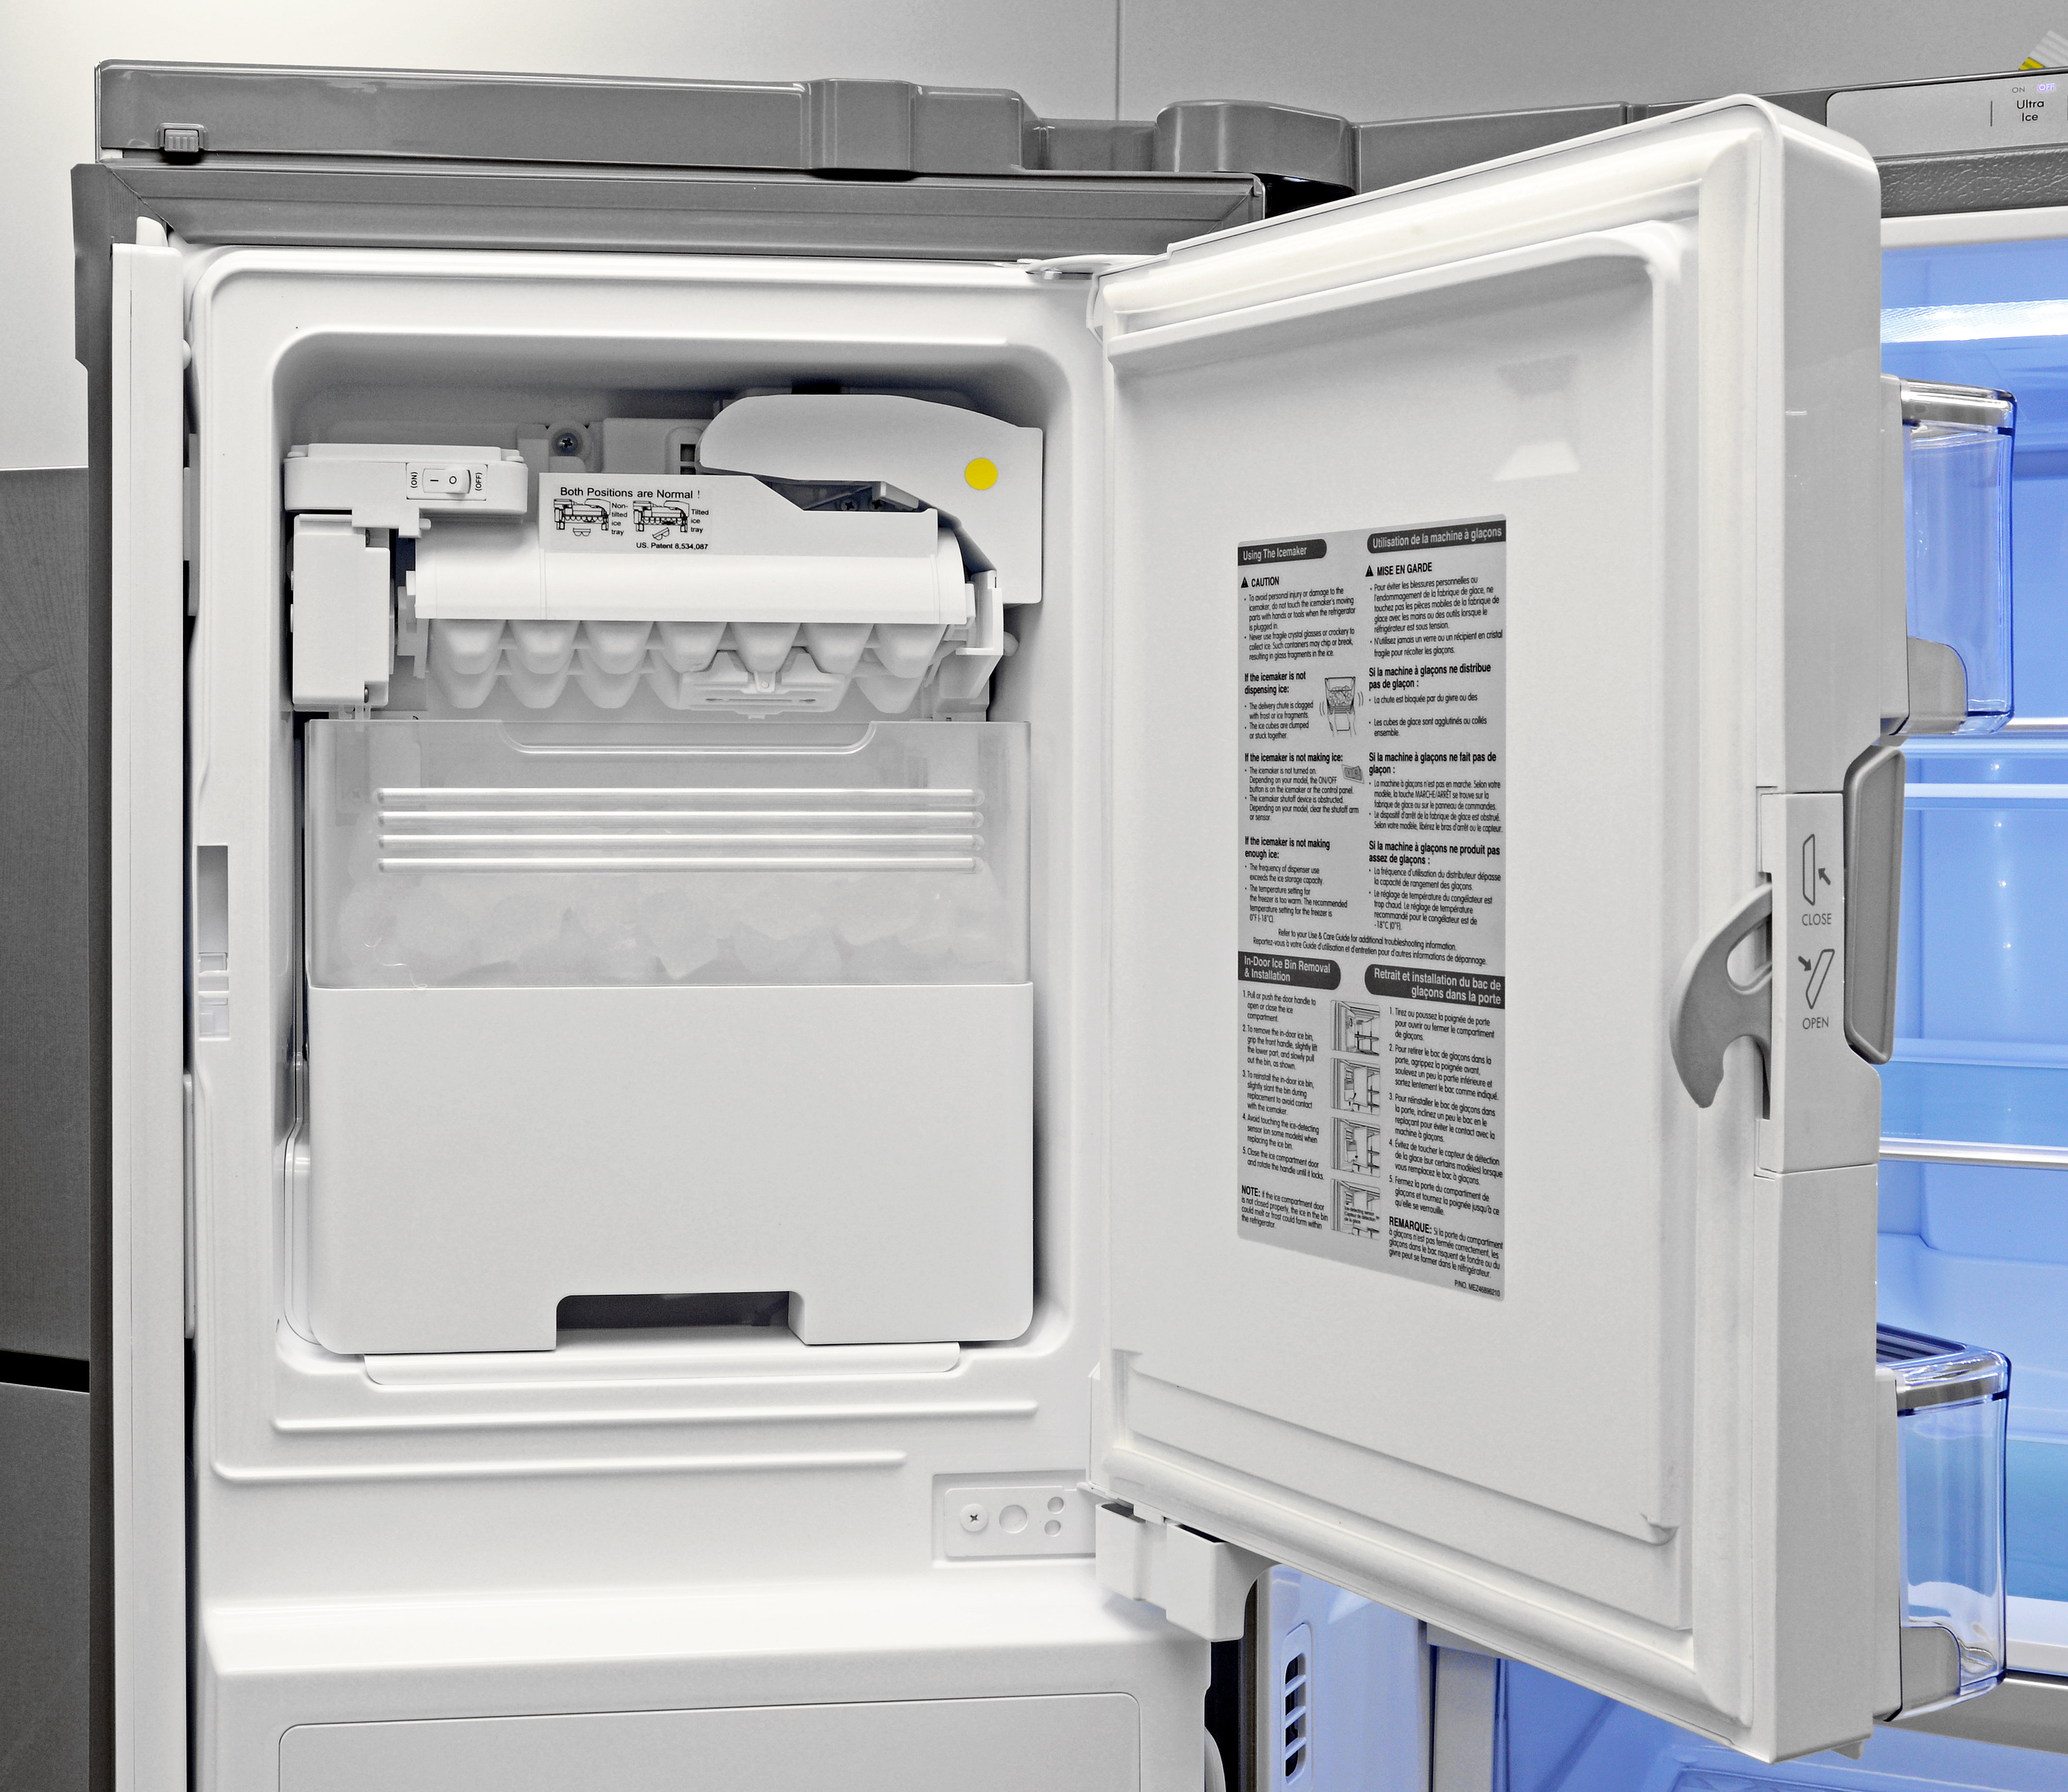 The Kenmore Elite 72483's door-mounted icemaker creates plenty of cubes, and is very easy to remove when you need bulk ice.